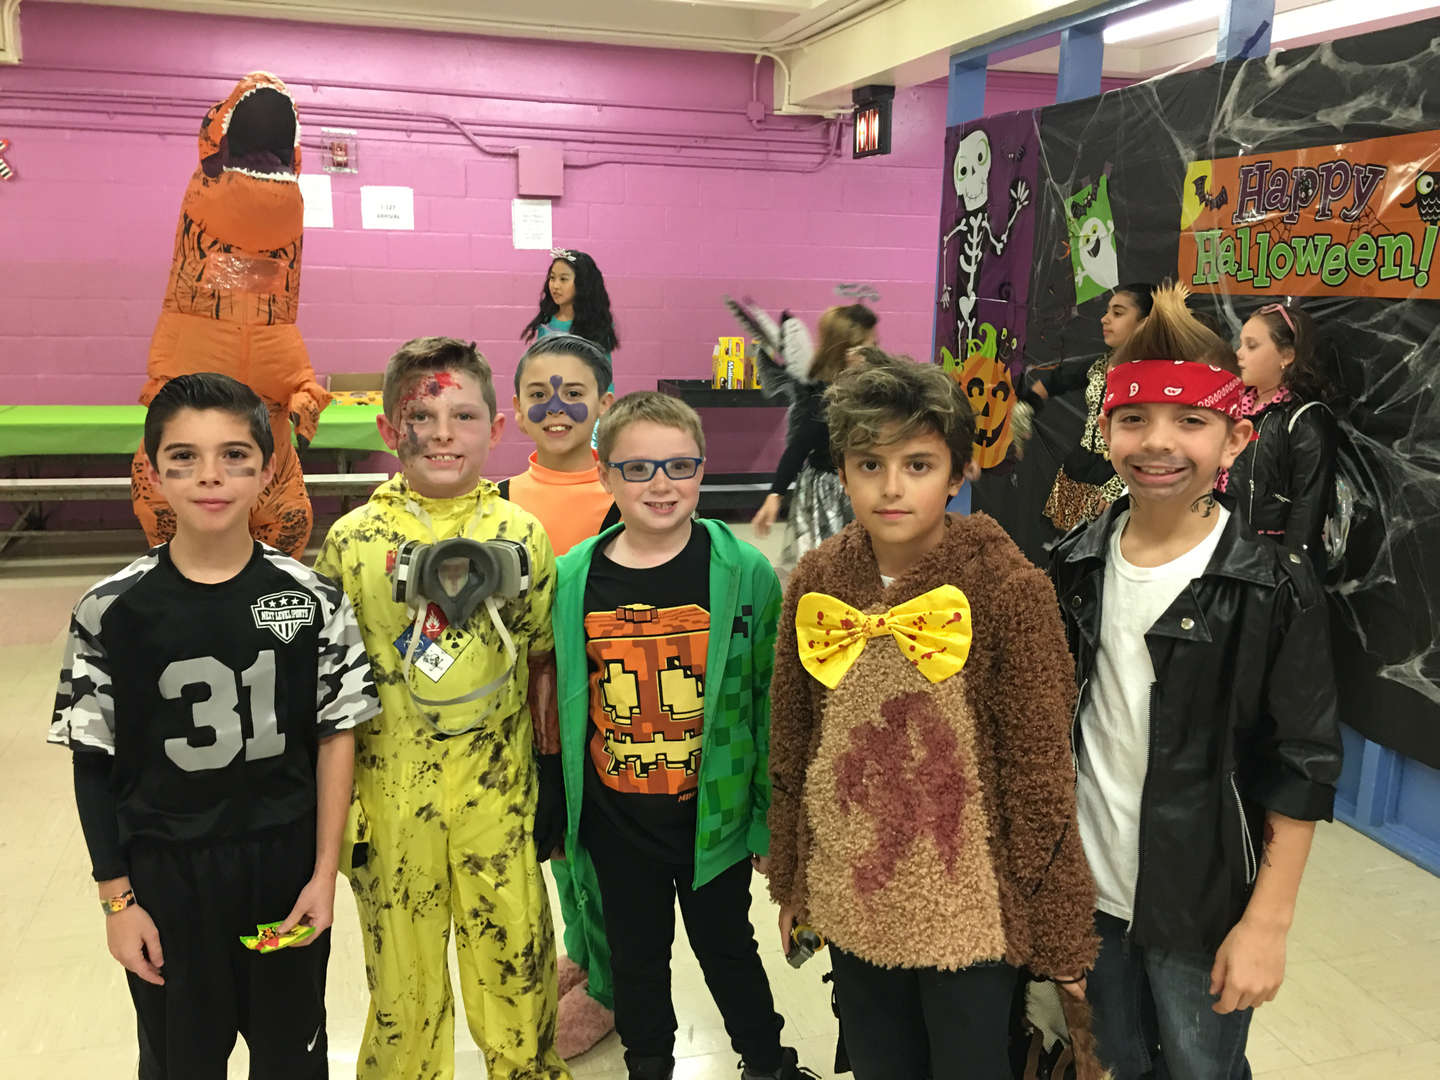 six boys in costume